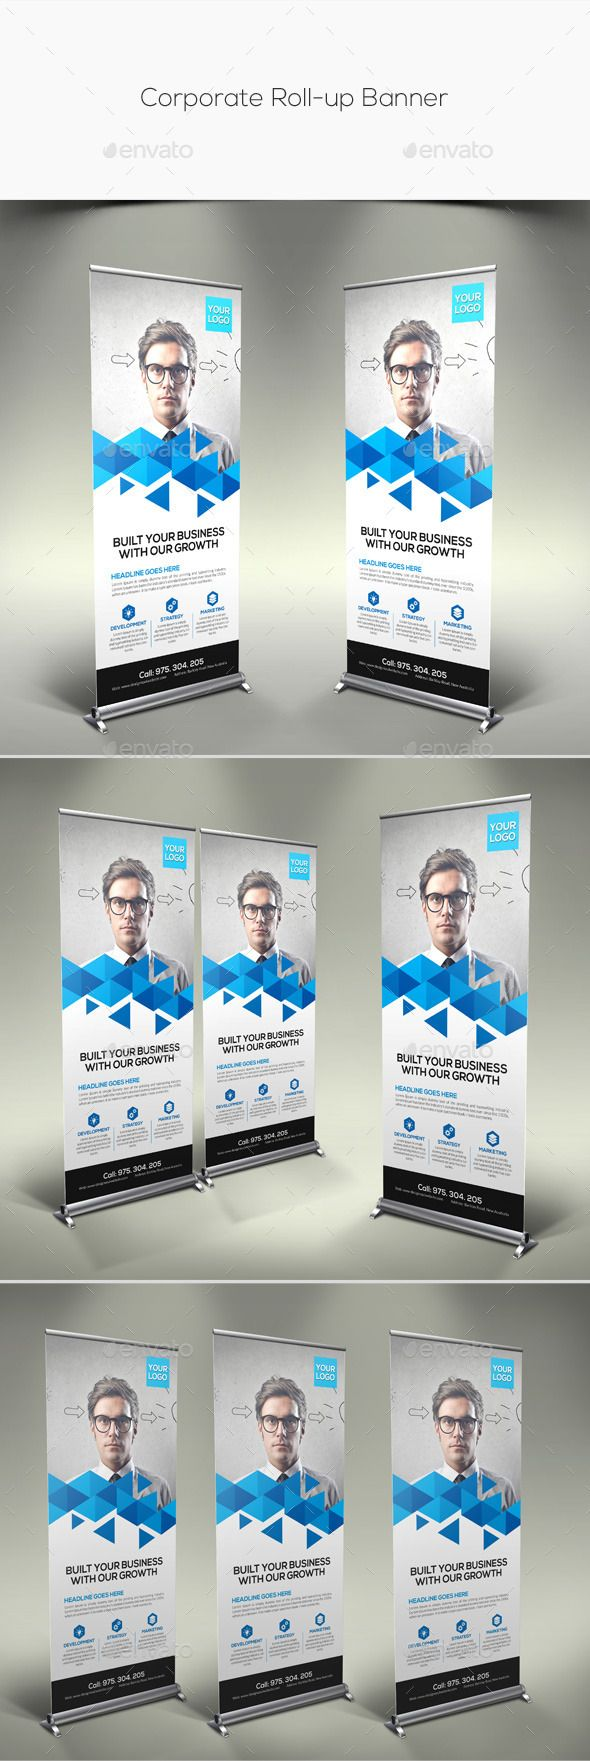 Corporate Rollup Banner — Photoshop PSD #editable #corporate banner • Availa...